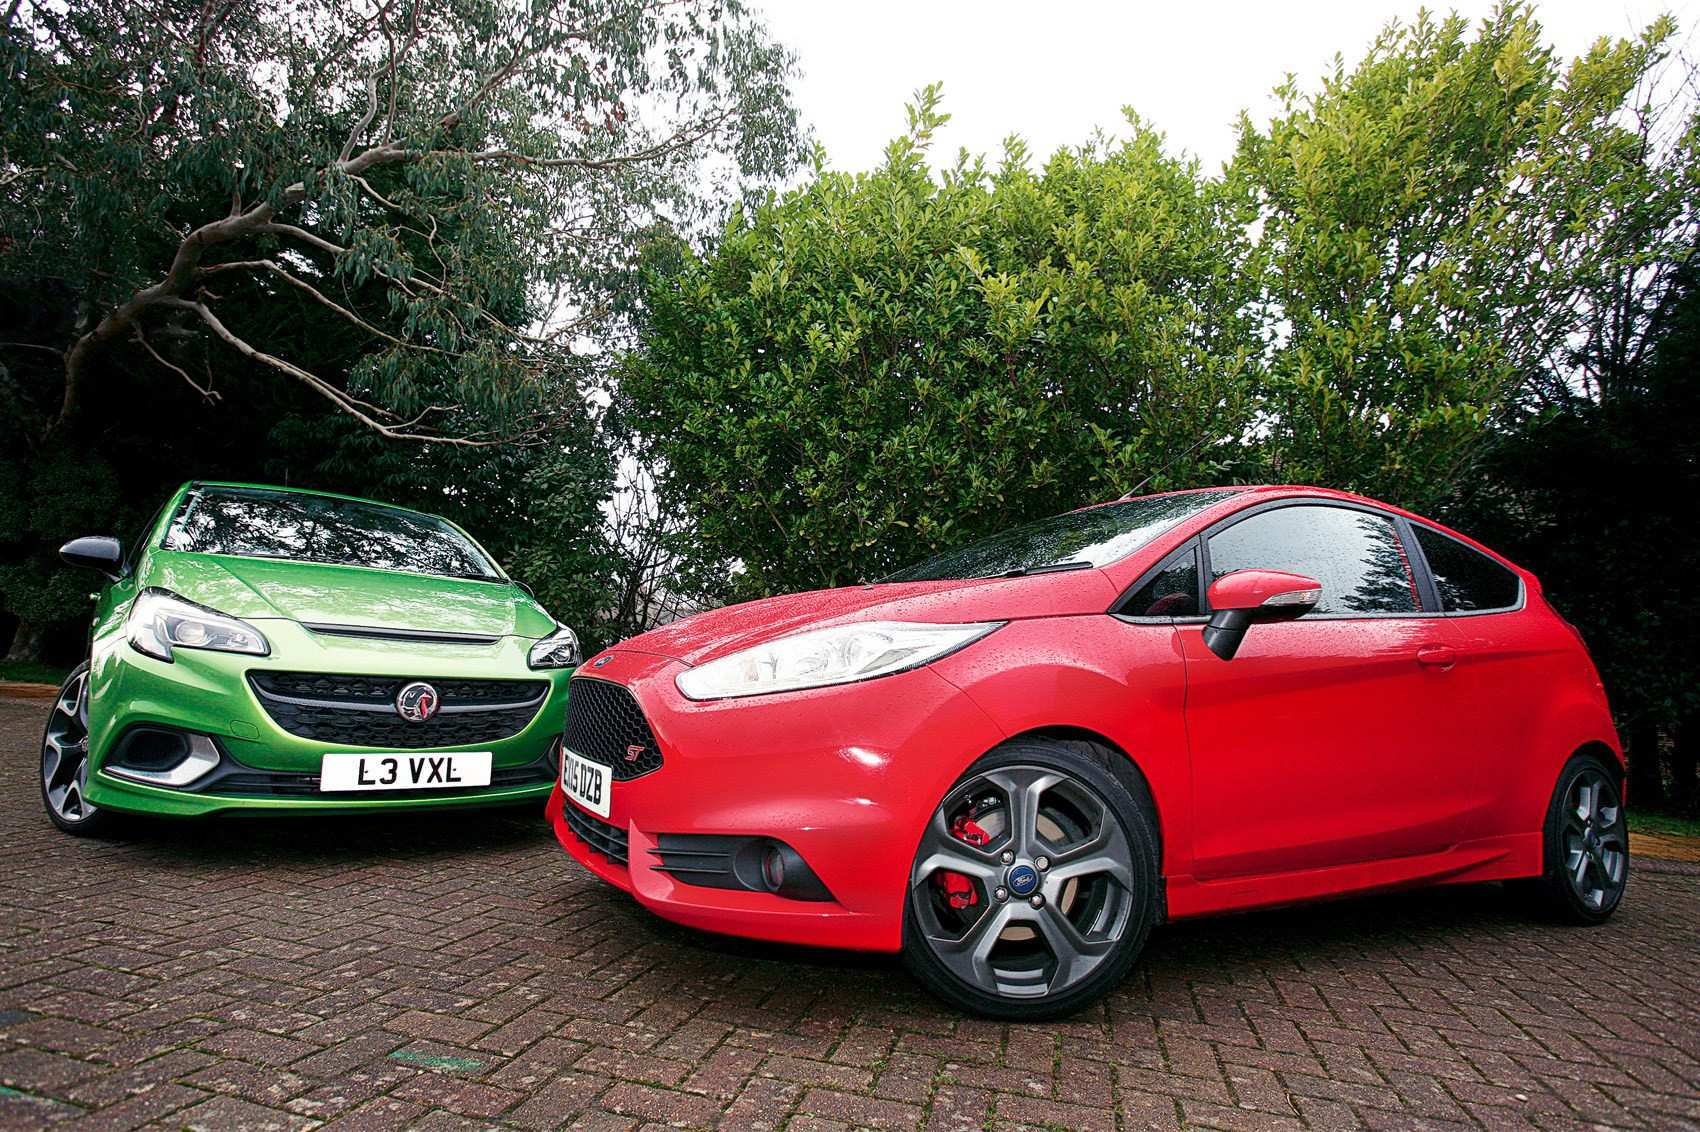 36 Great 2020 Vauxhall Corsa VXR First Drive with 2020 Vauxhall Corsa VXR